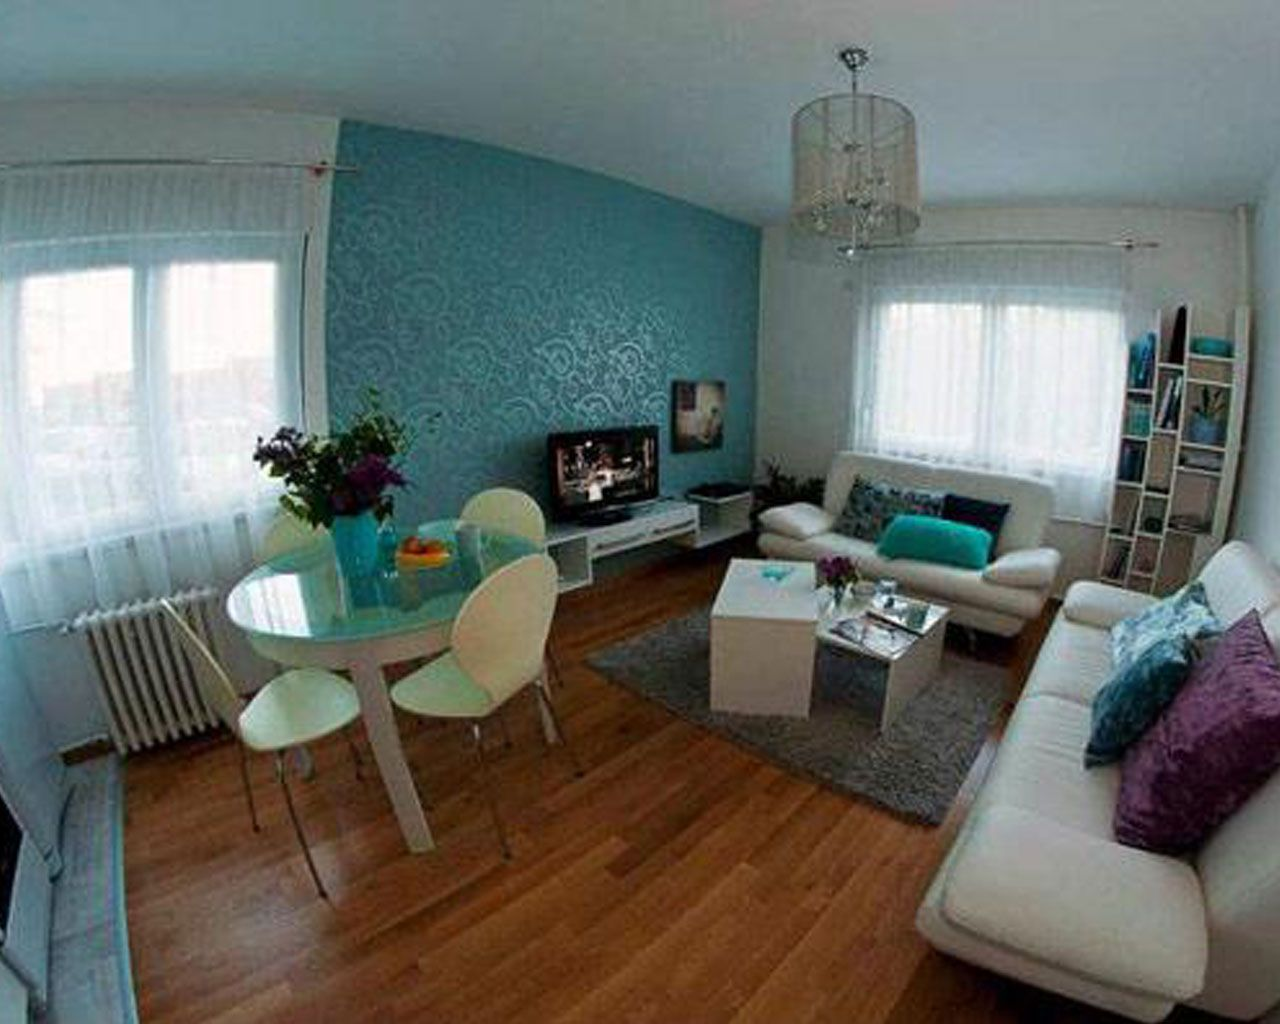 ... Layout With Blue Ocean Wall Colour And Confort Cream Sofa And Blue  Dining Table Contemporary Apartment Living Room Design Tips How To Choose  The Right ... Part 47